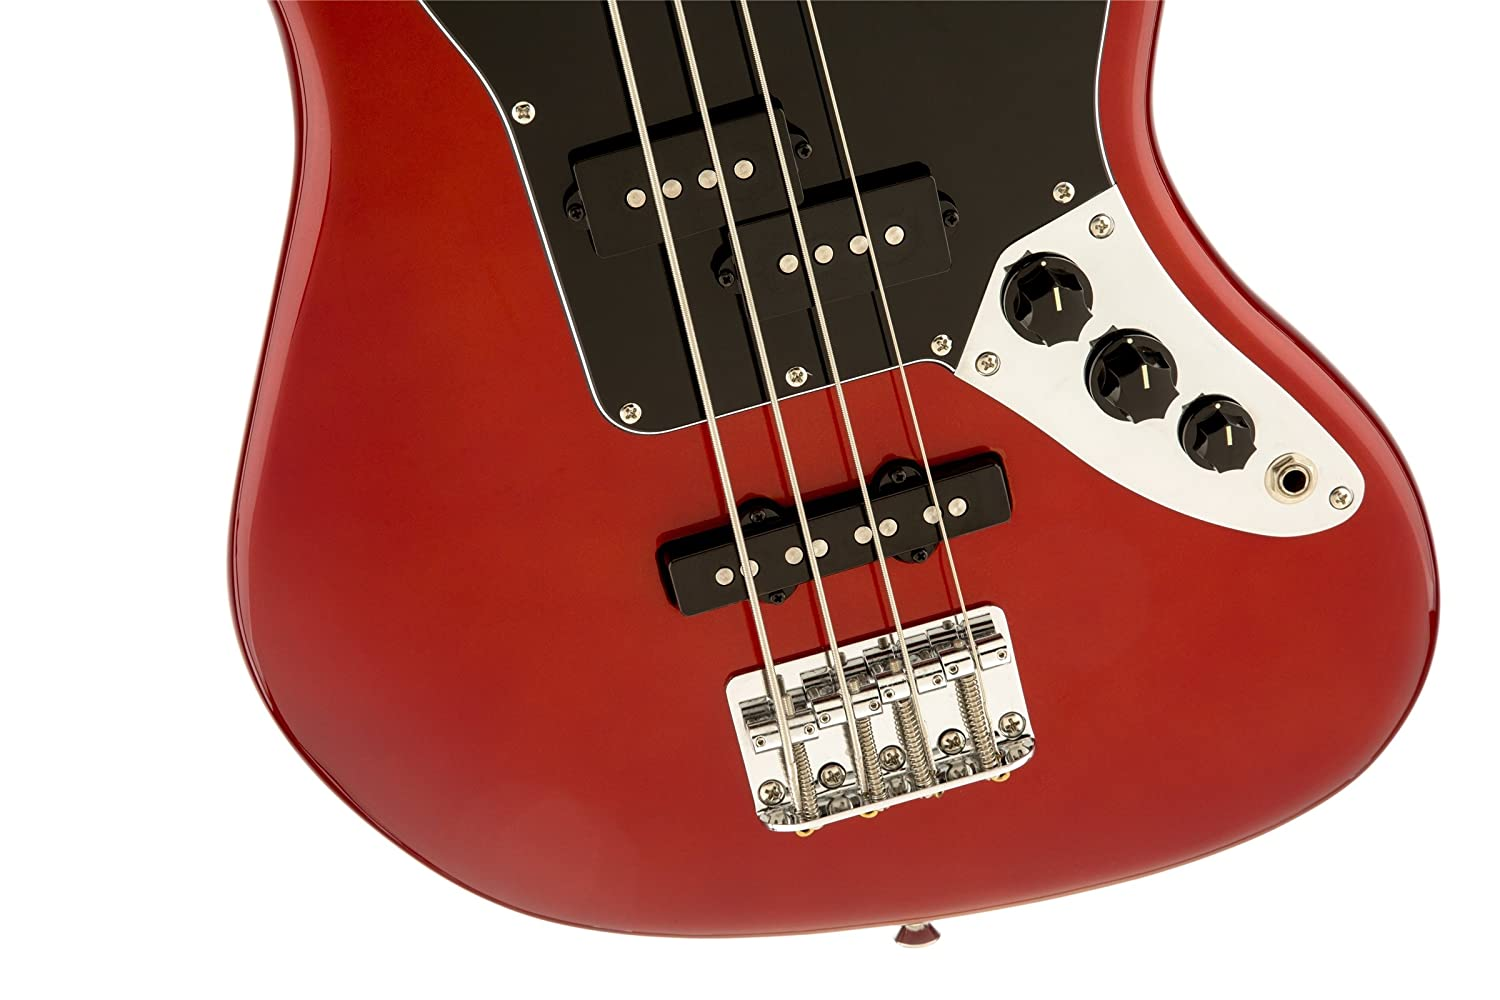 My eb bass squier vintage modified jazz bass - Squier Vintage Modified Jaguar Ss Car Electric Bass Guitar Amazon Co Uk Musical Instruments